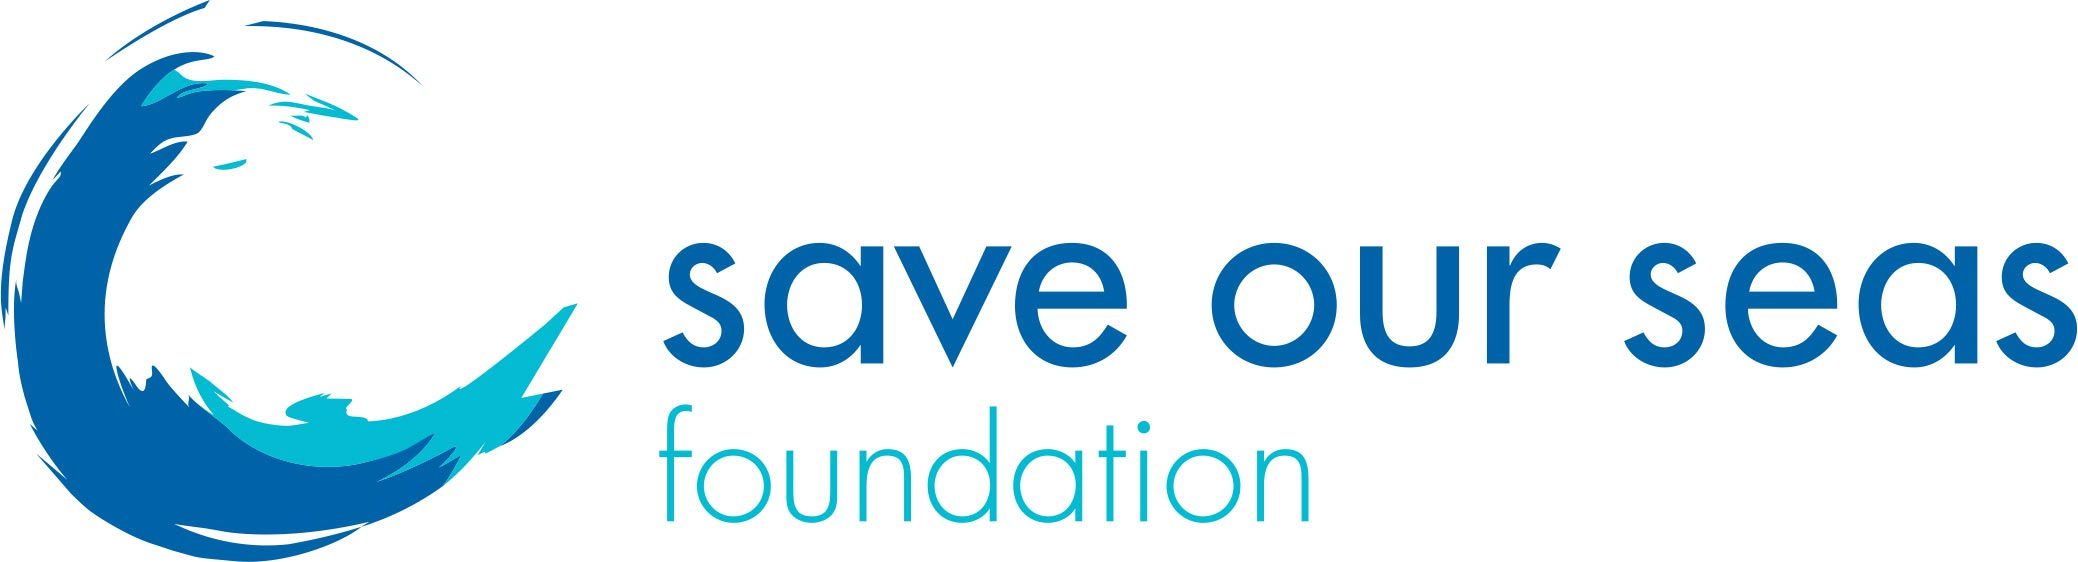 SOSF-Save-Our-Seas-Foundation-Logo-20150519-Hor-L